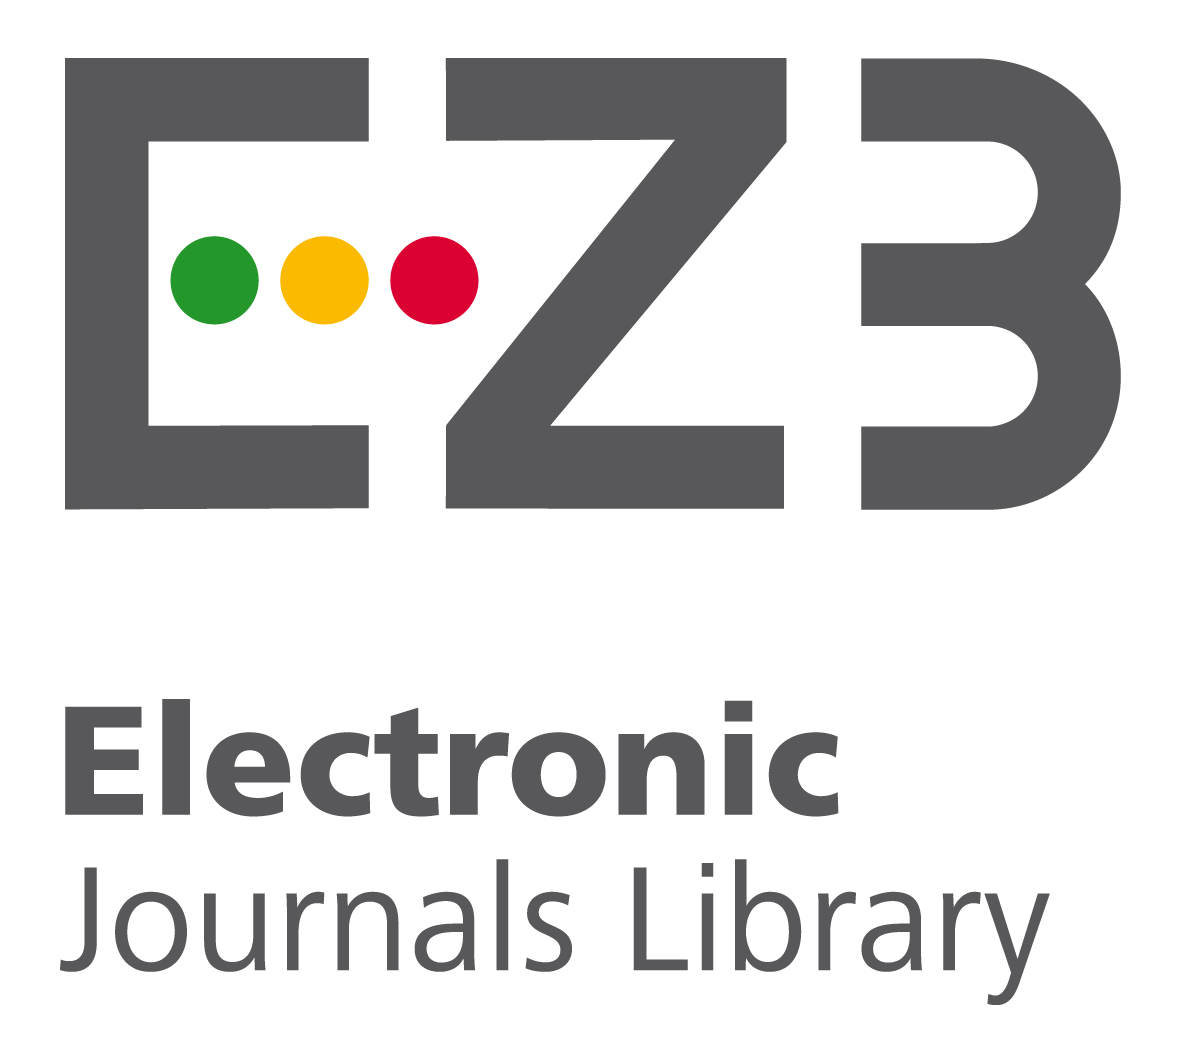 Logo of the Electronic Journals Library